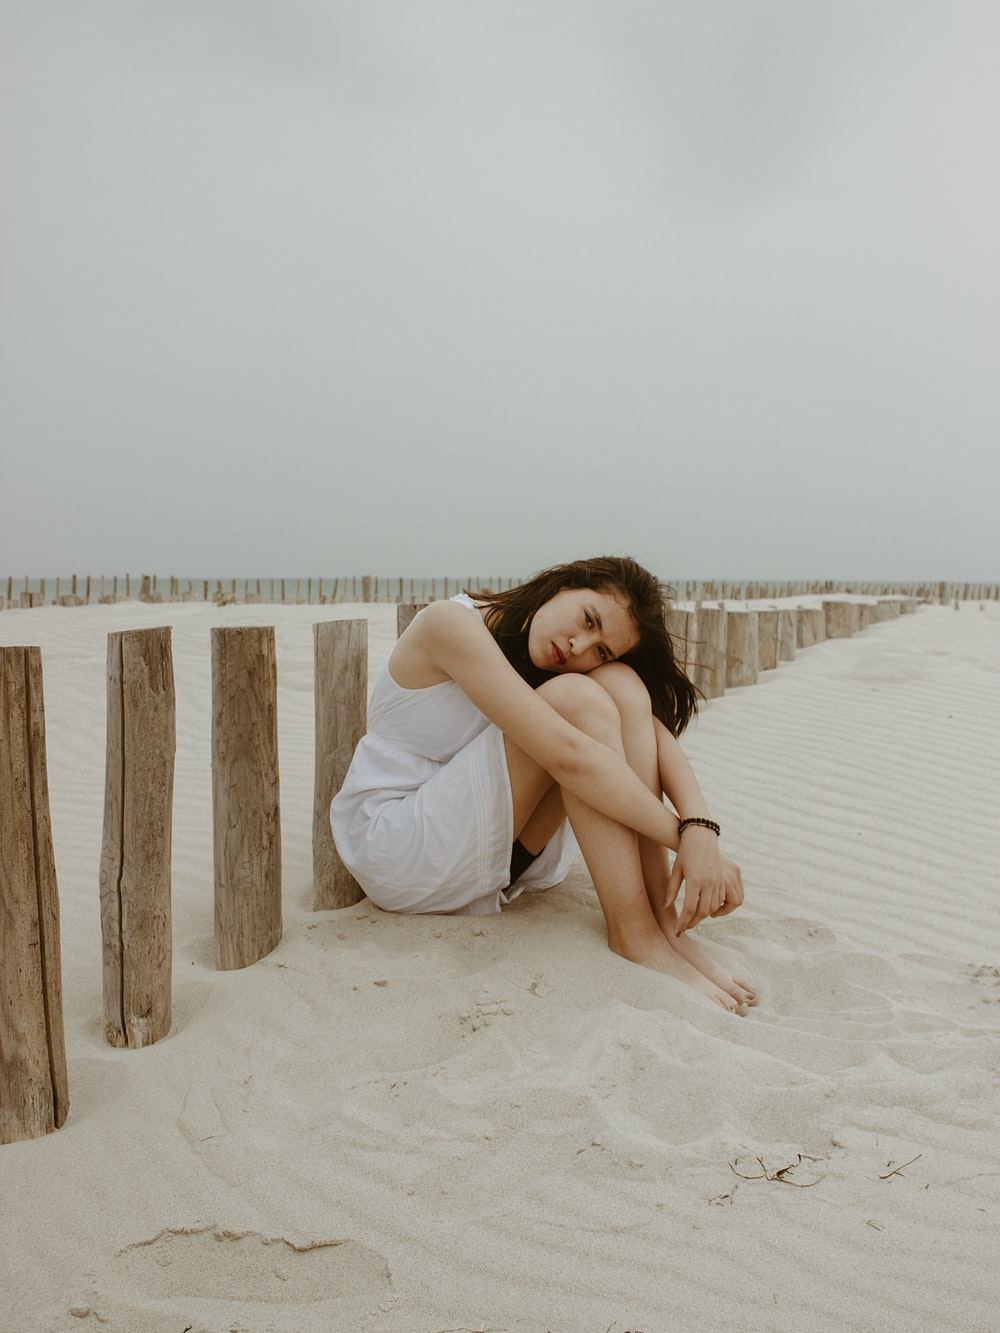 woman in white dress sitting on white sand during daytime